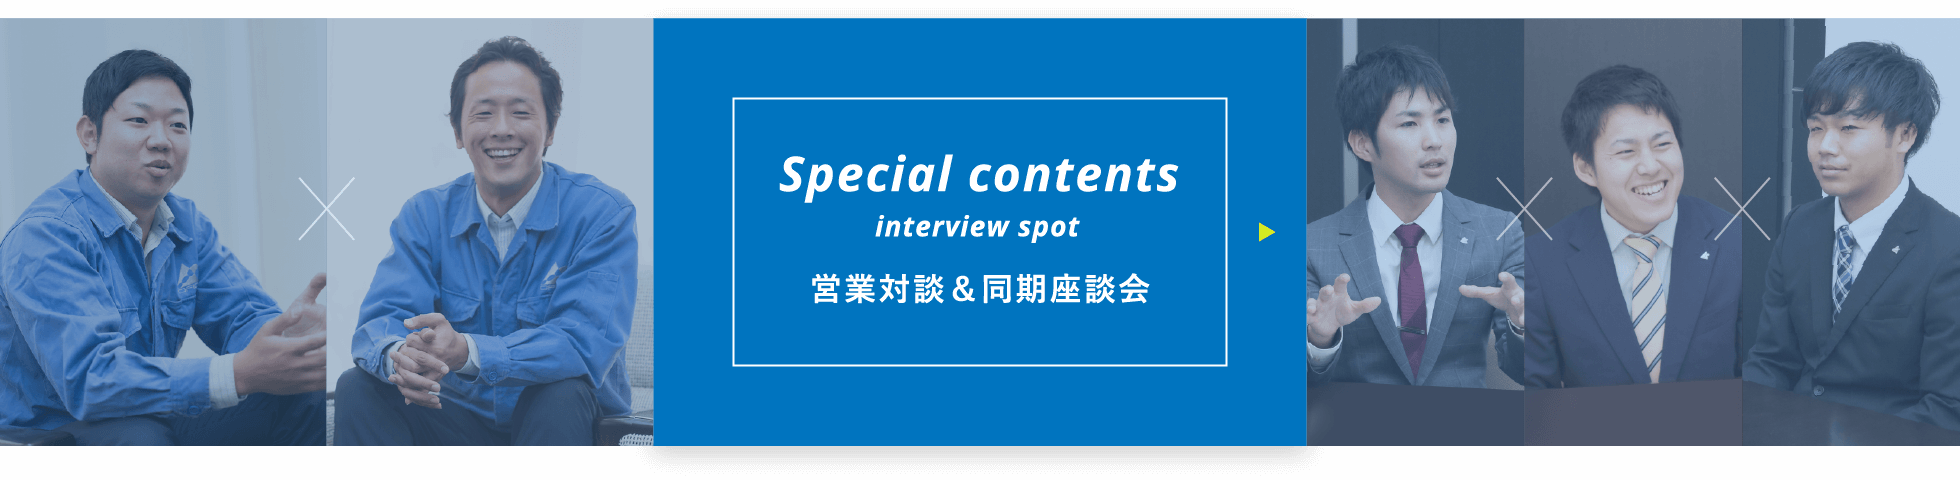 Special contents interview spot 営業対談&同期座談会